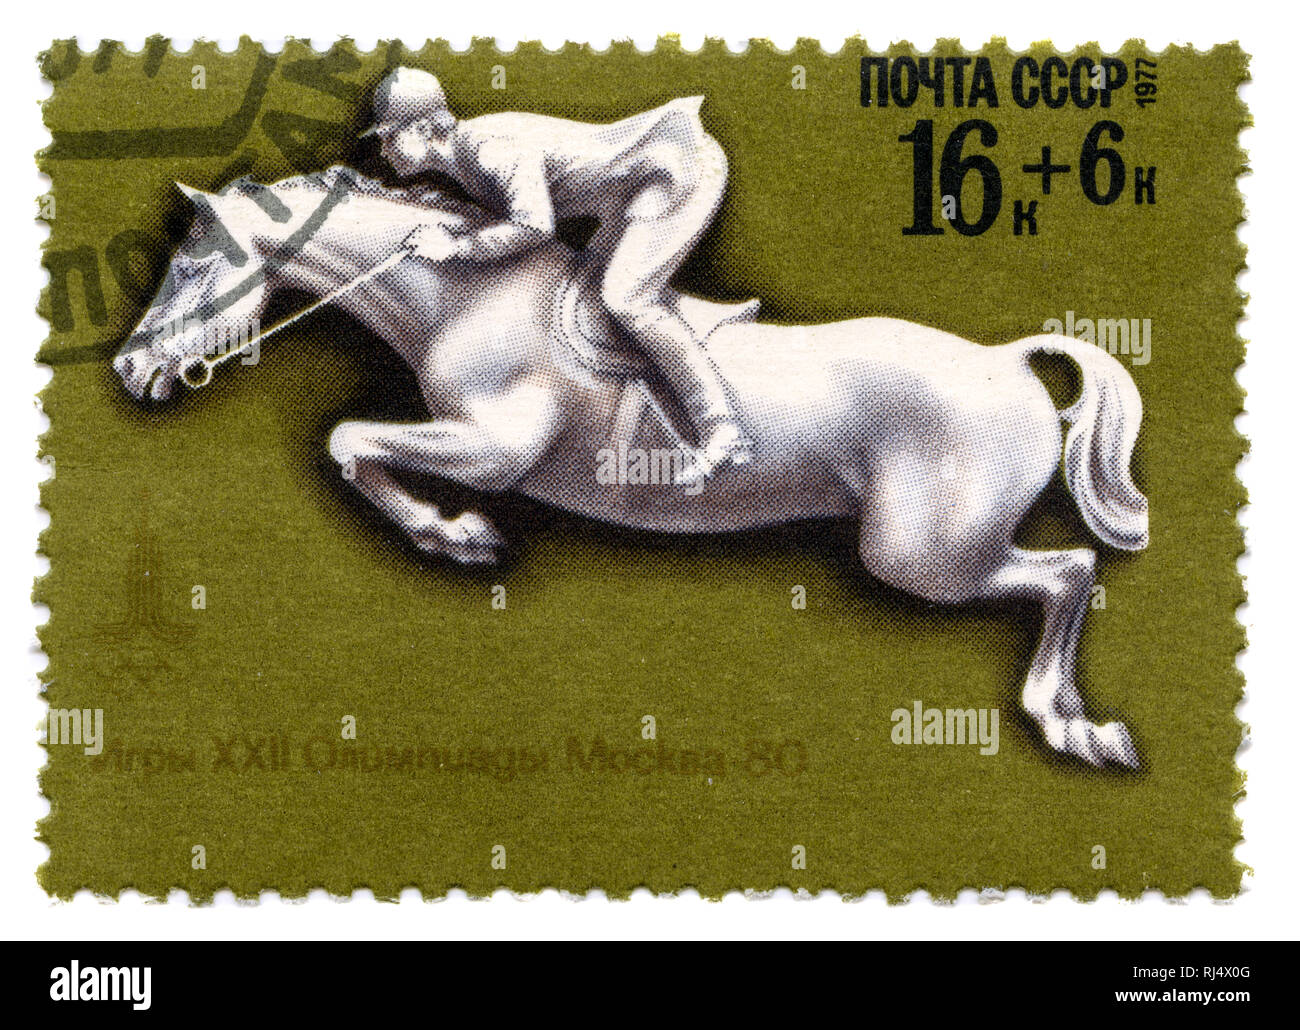 Postage stamp from the Soviet Union in the Summer Olympic Games 1980, Moscow (III) series issued in 1977 - Stock Image